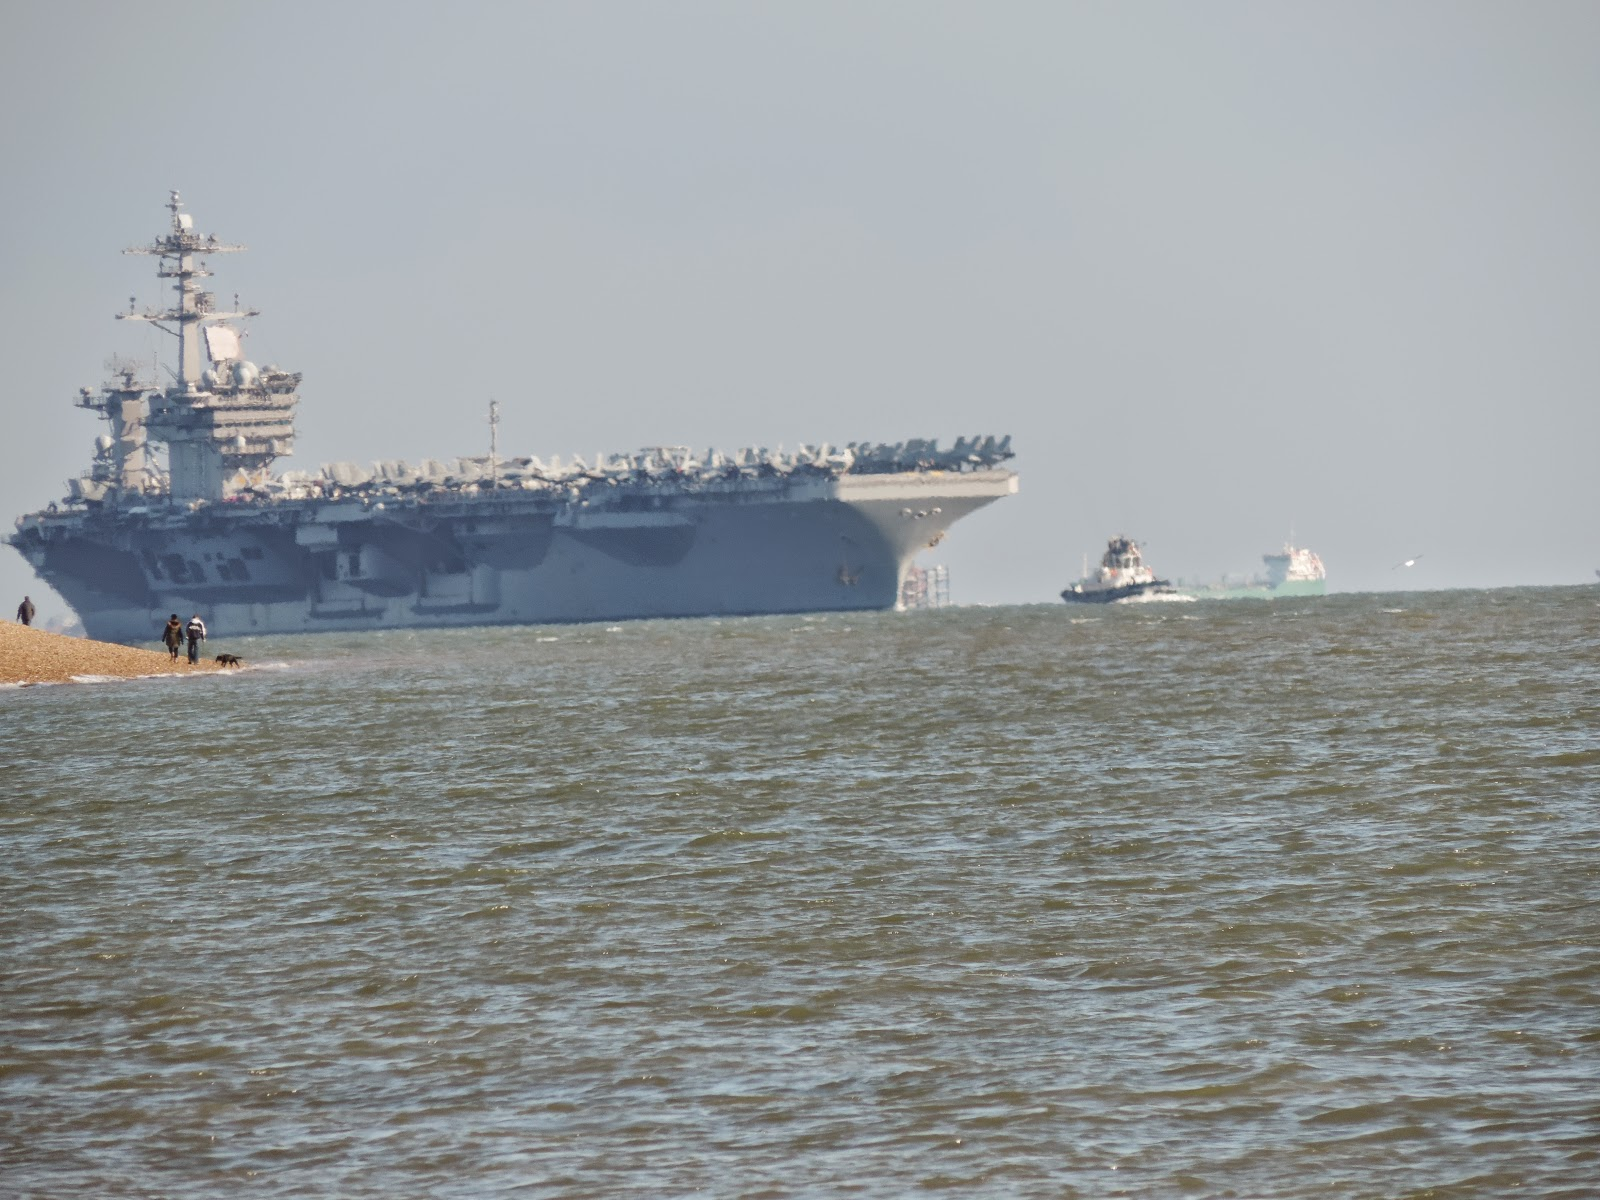 american aircraft carrier visits stokes bay on world tour